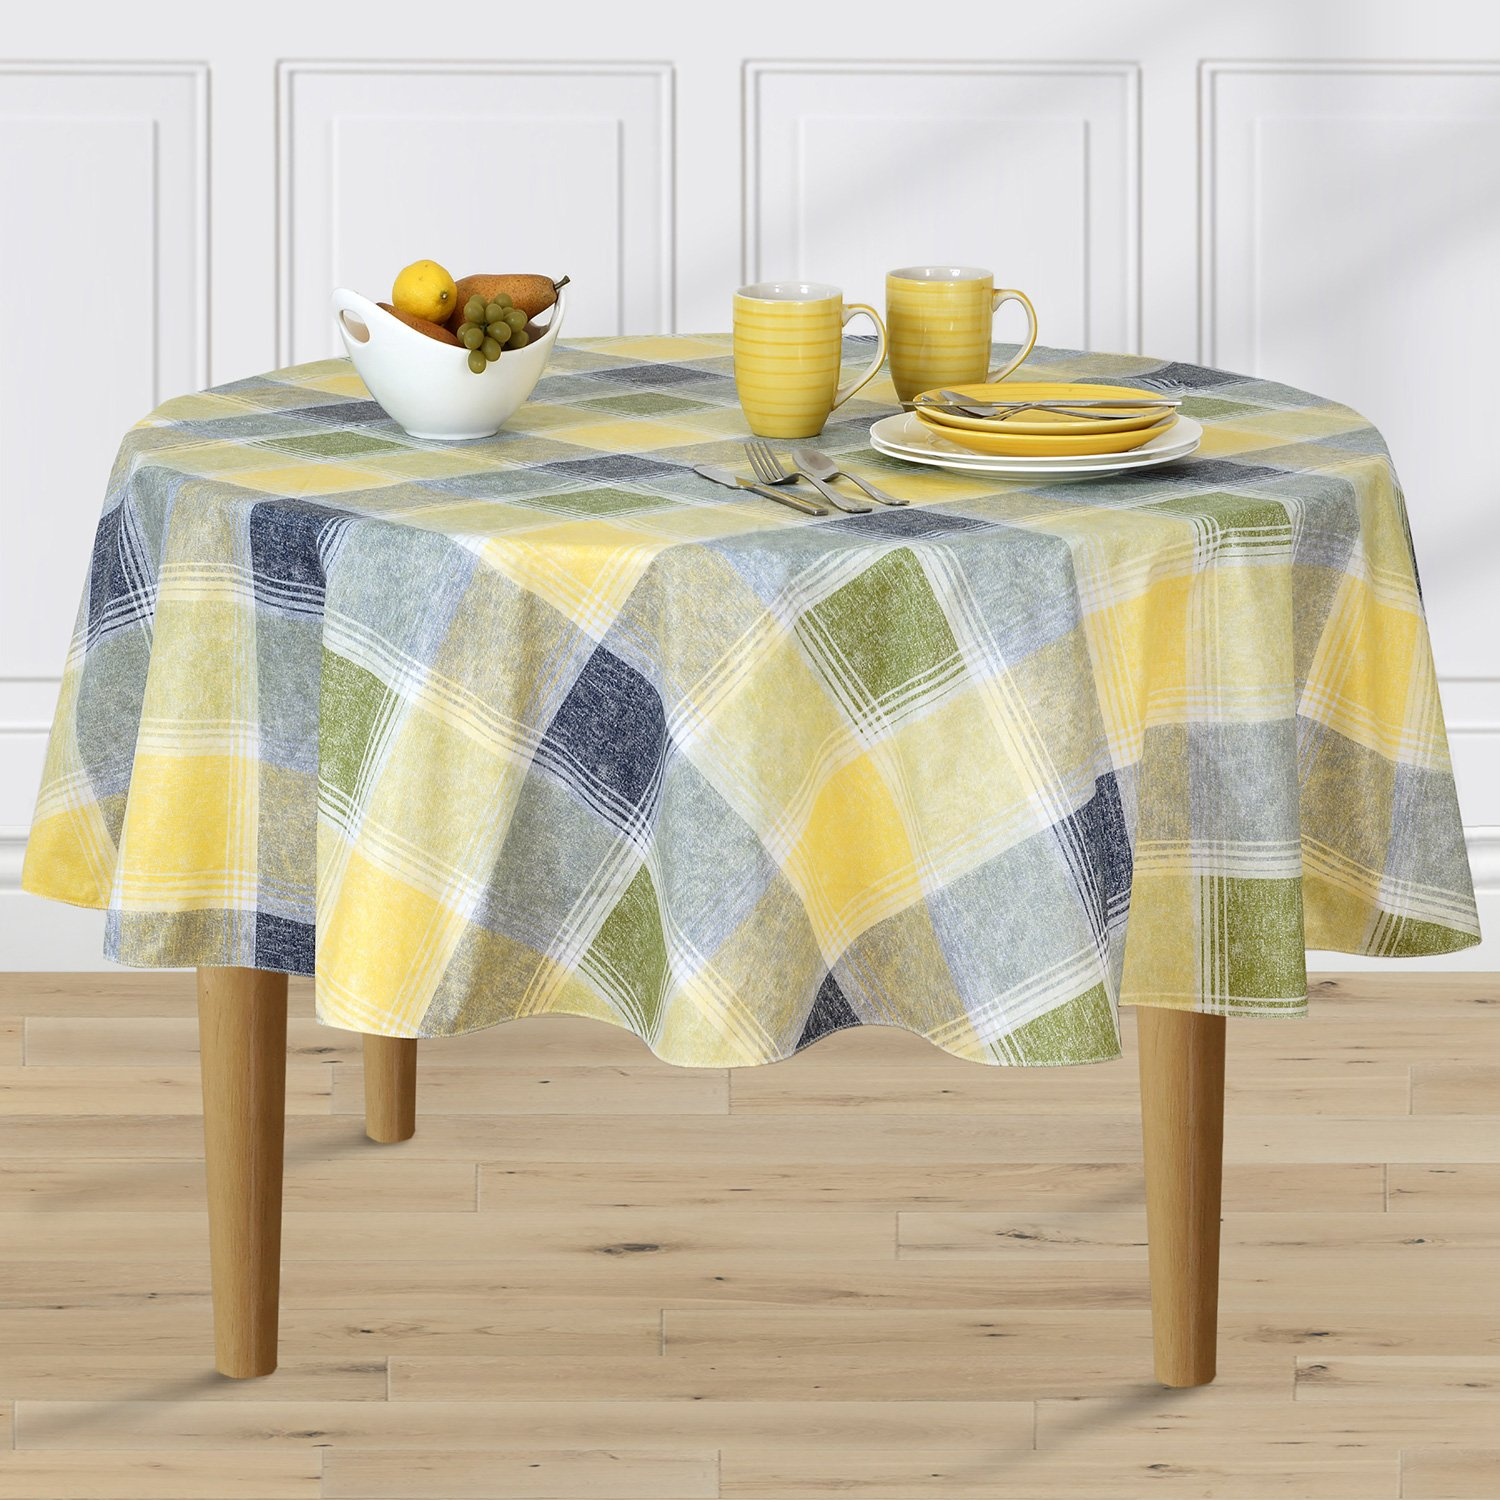 Harmony Plaid Flannel Backed Indoor Outdoor Vinyl Table Linens, 11.75-Inch by 18-Inch Placemats Set of 4, Blue Newbridge